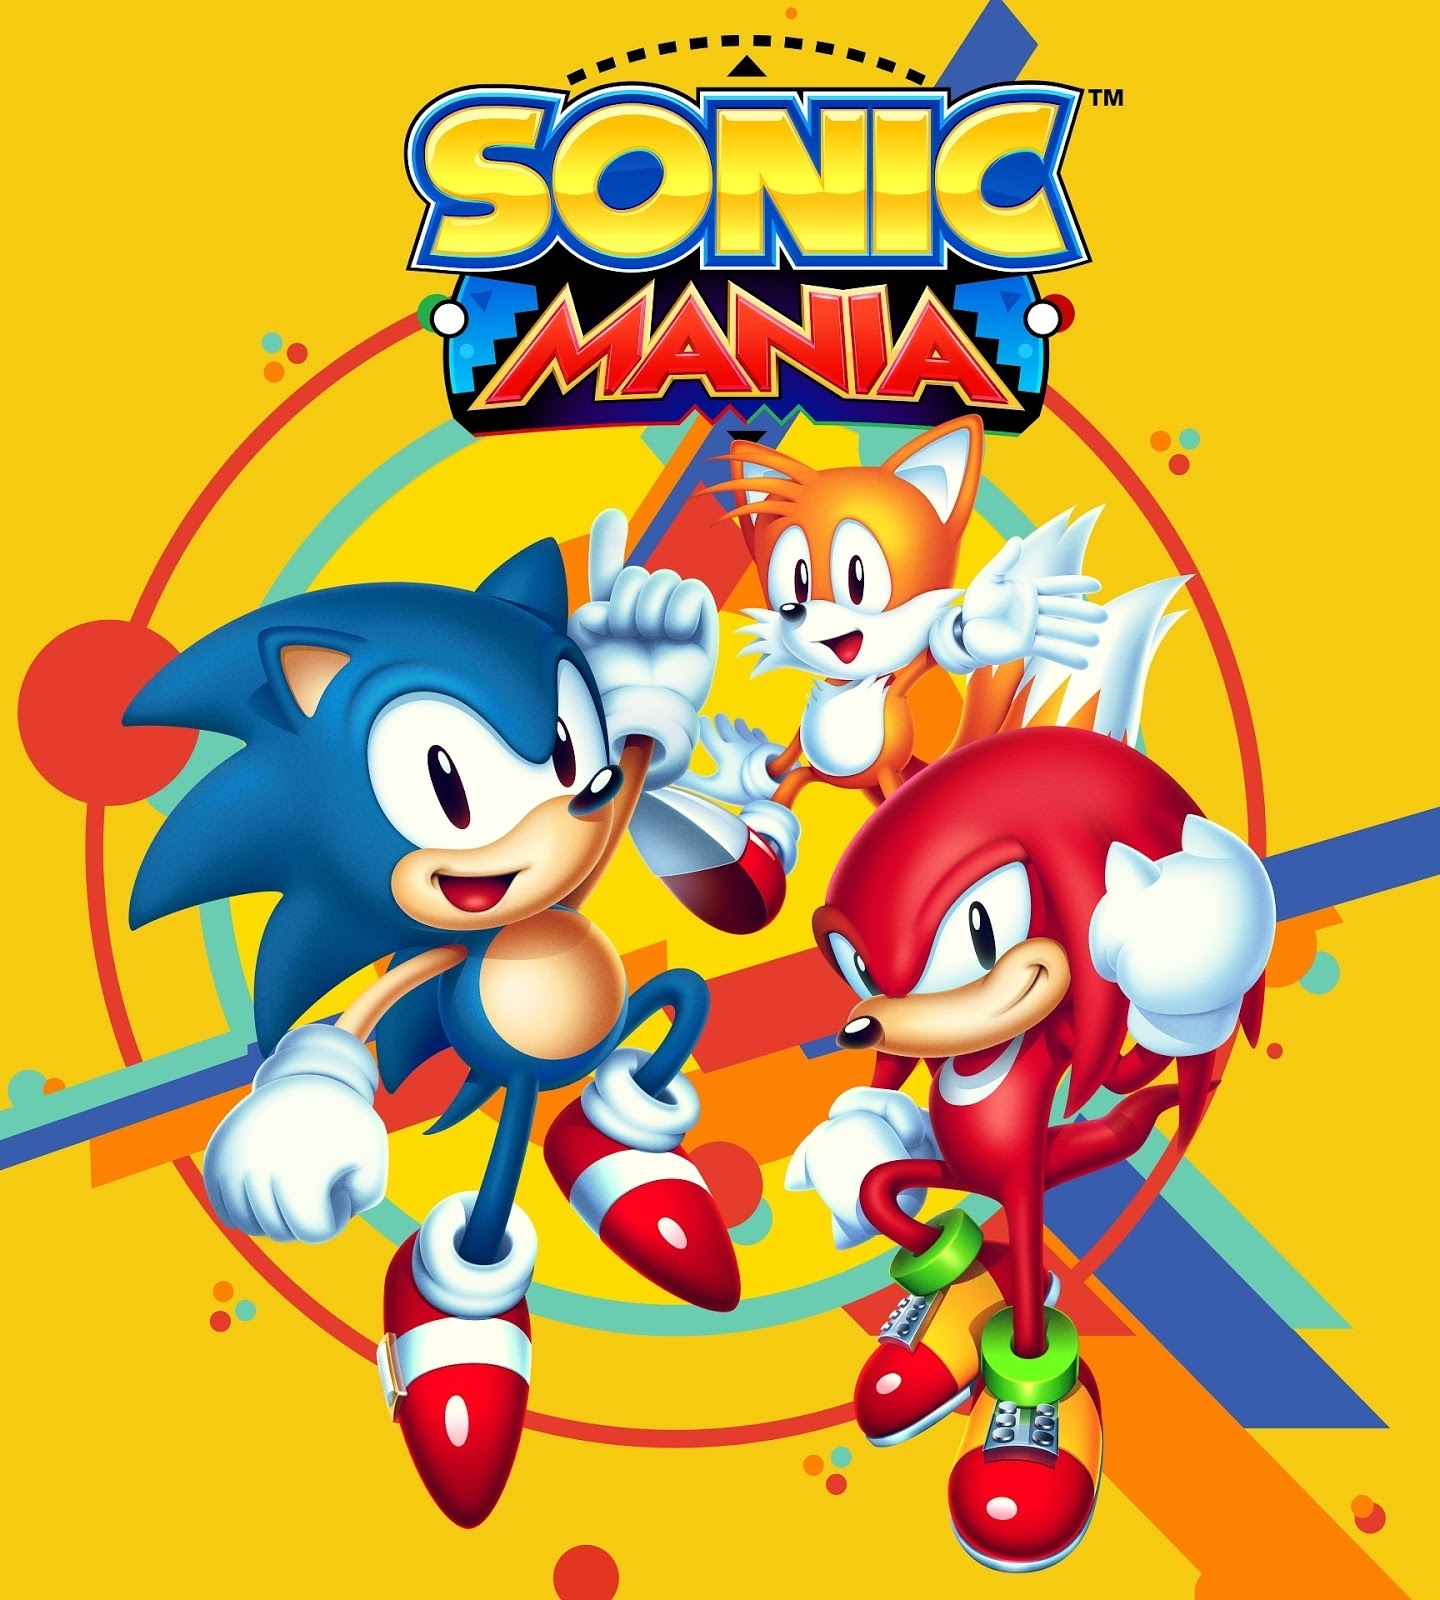 sonic mania torrent download for pc